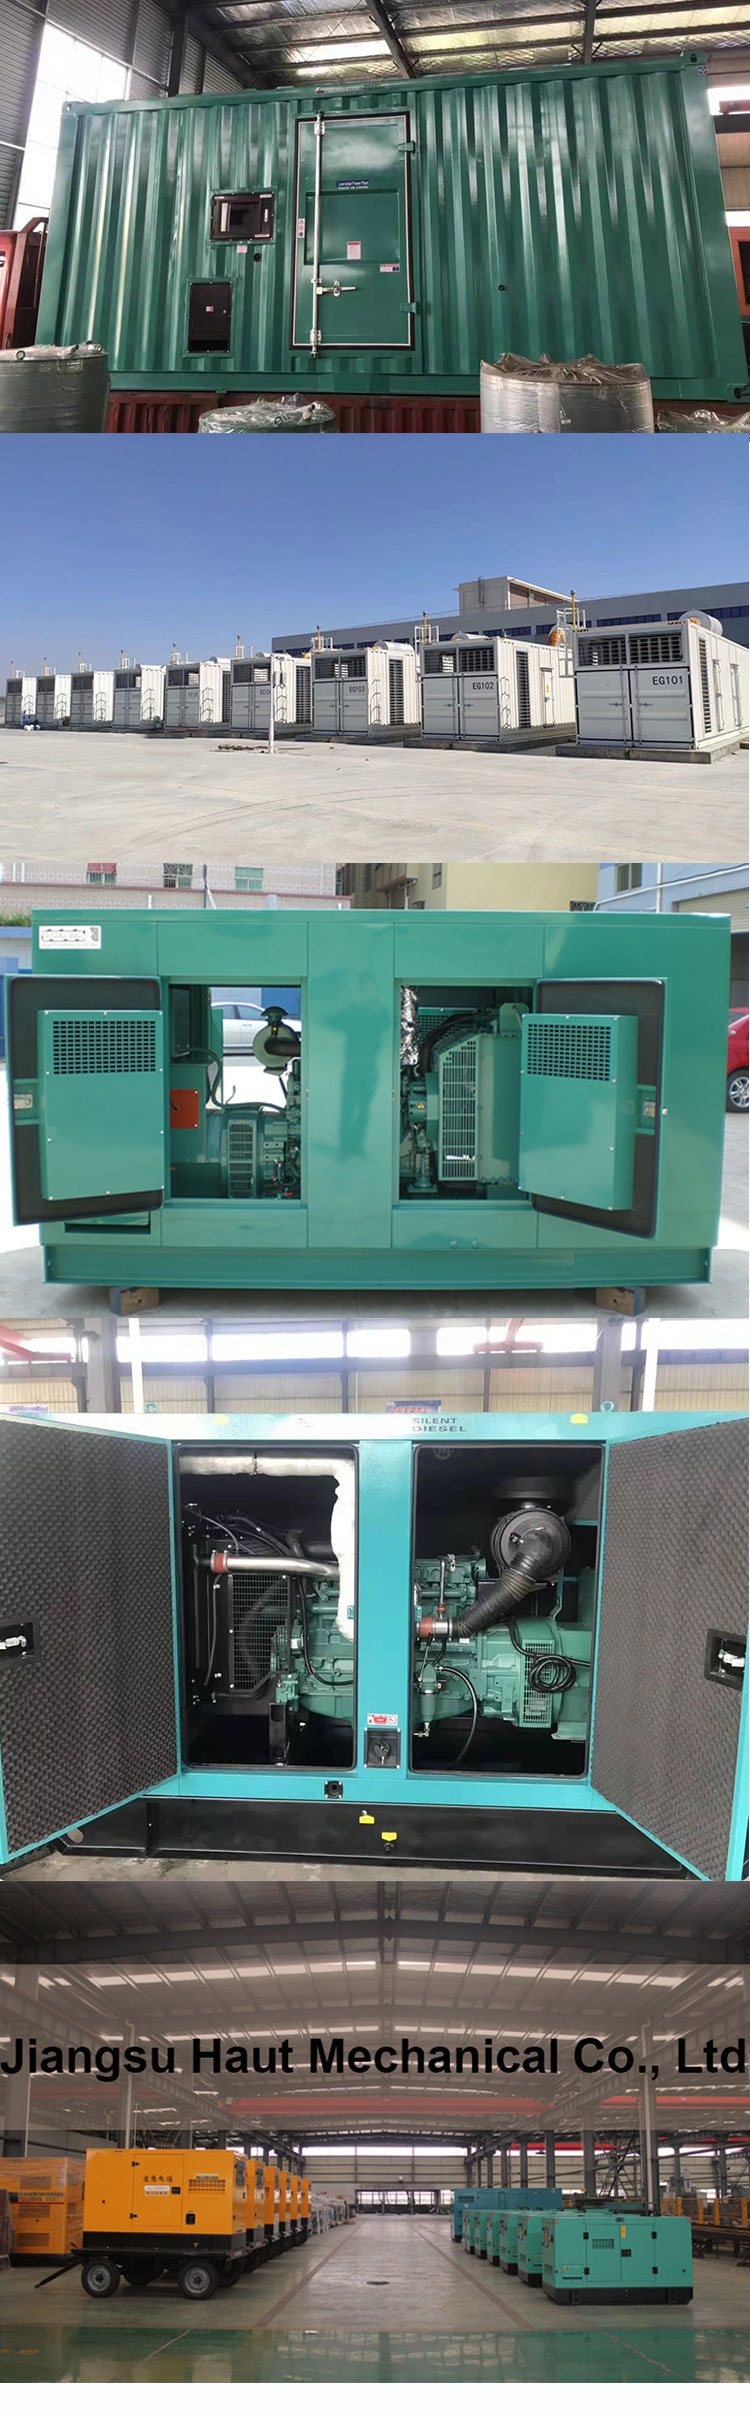 Power failure self-protection generator 50 kW Weichai silent diesel generator 62.5 kVA high-pressure water-cooled generator